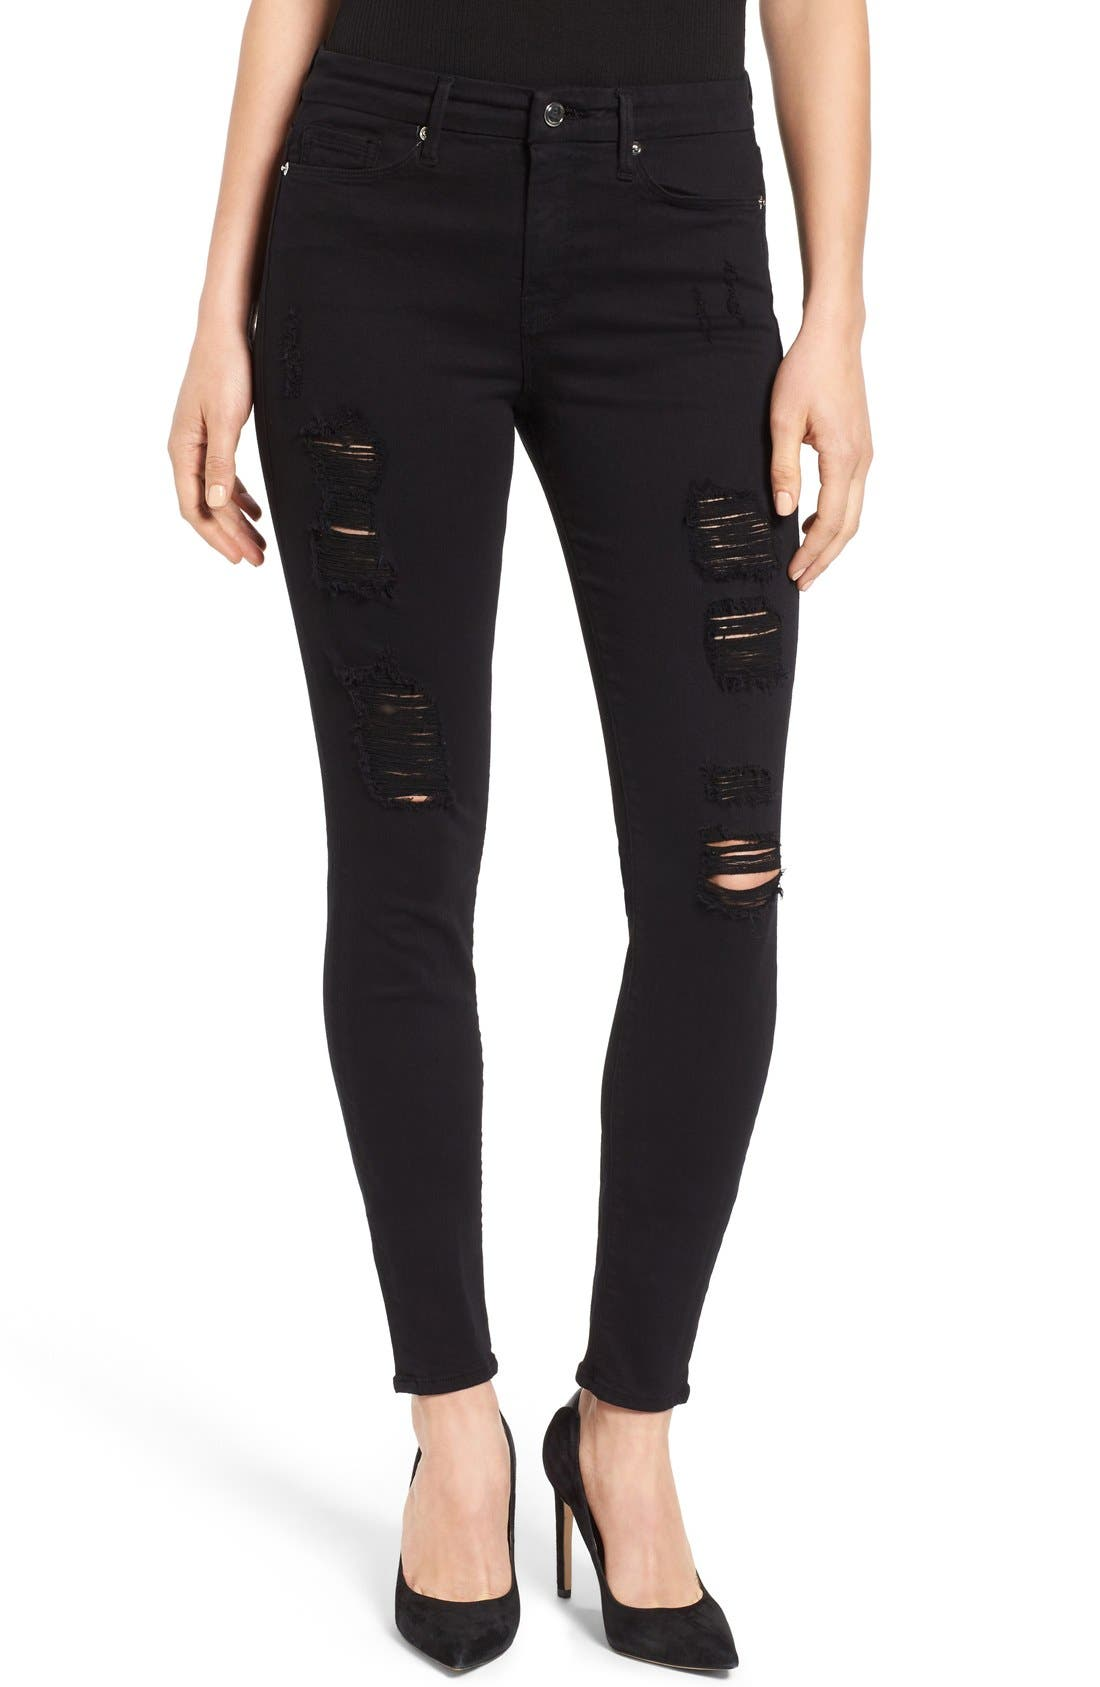 Main Image - Good American Good Legs High Rise Ripped Skinny Jeans (Black 002)